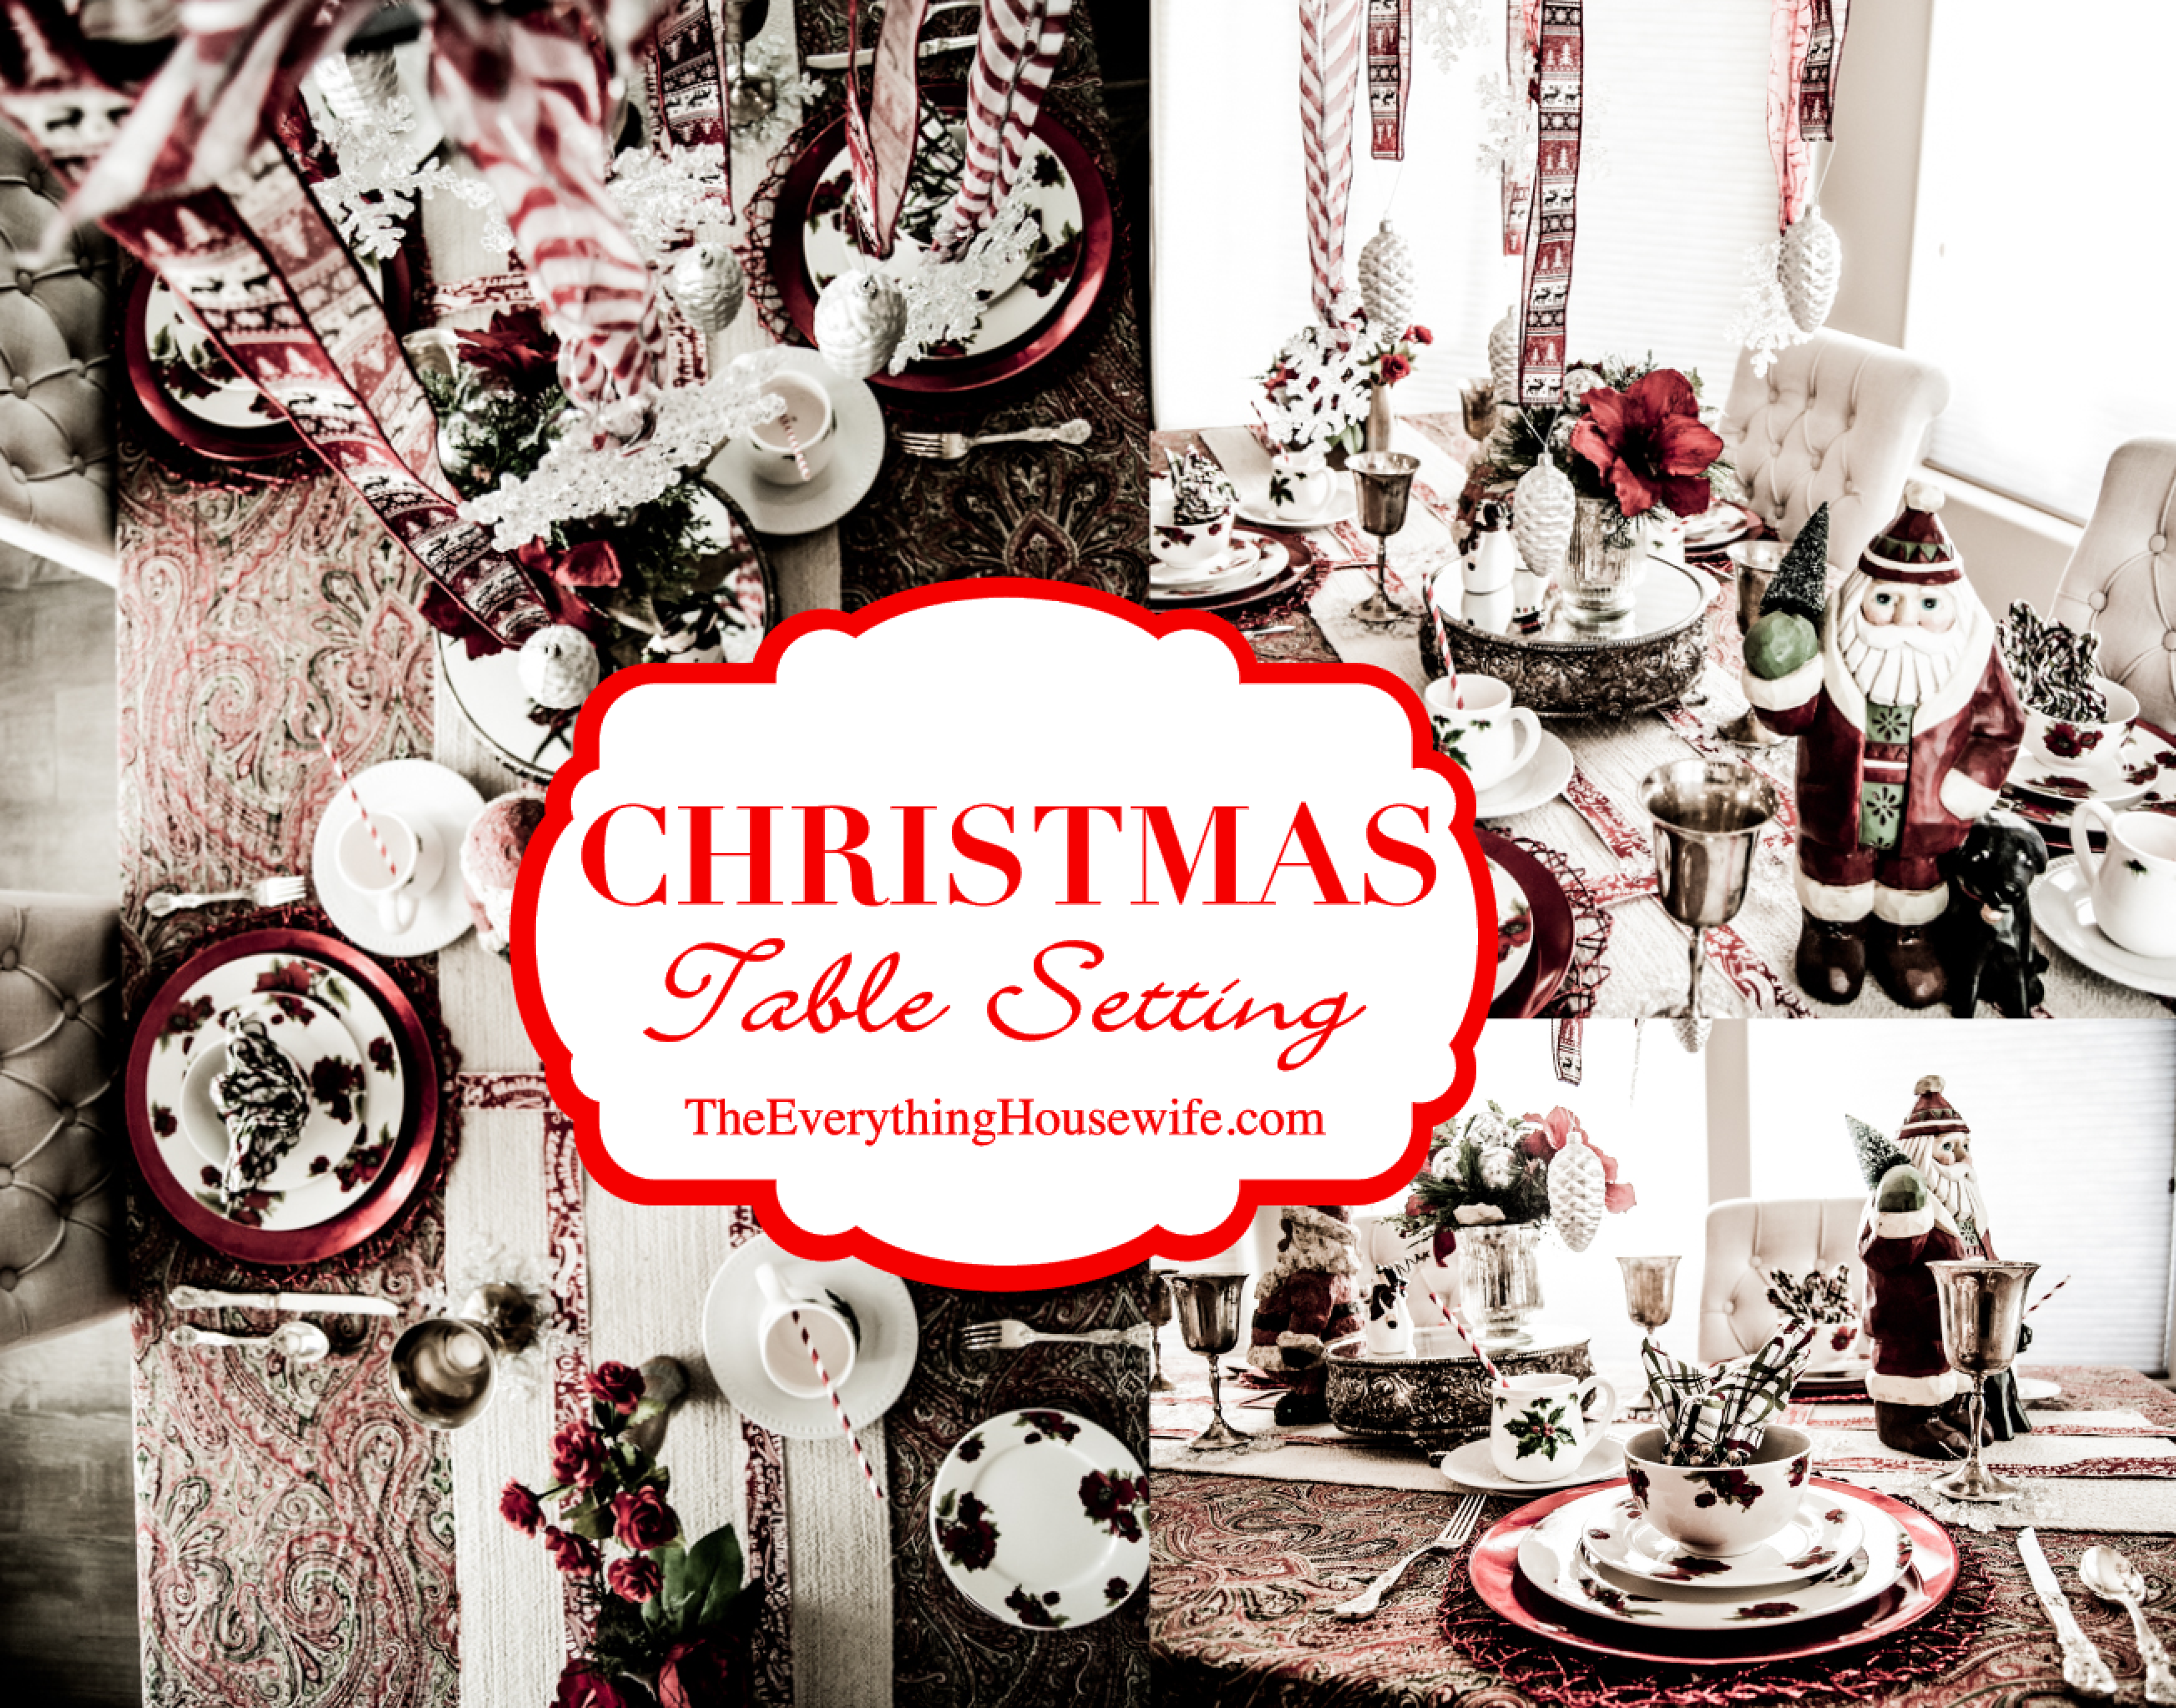 Christmas Table Setting Idea - The Everything Housewife.com